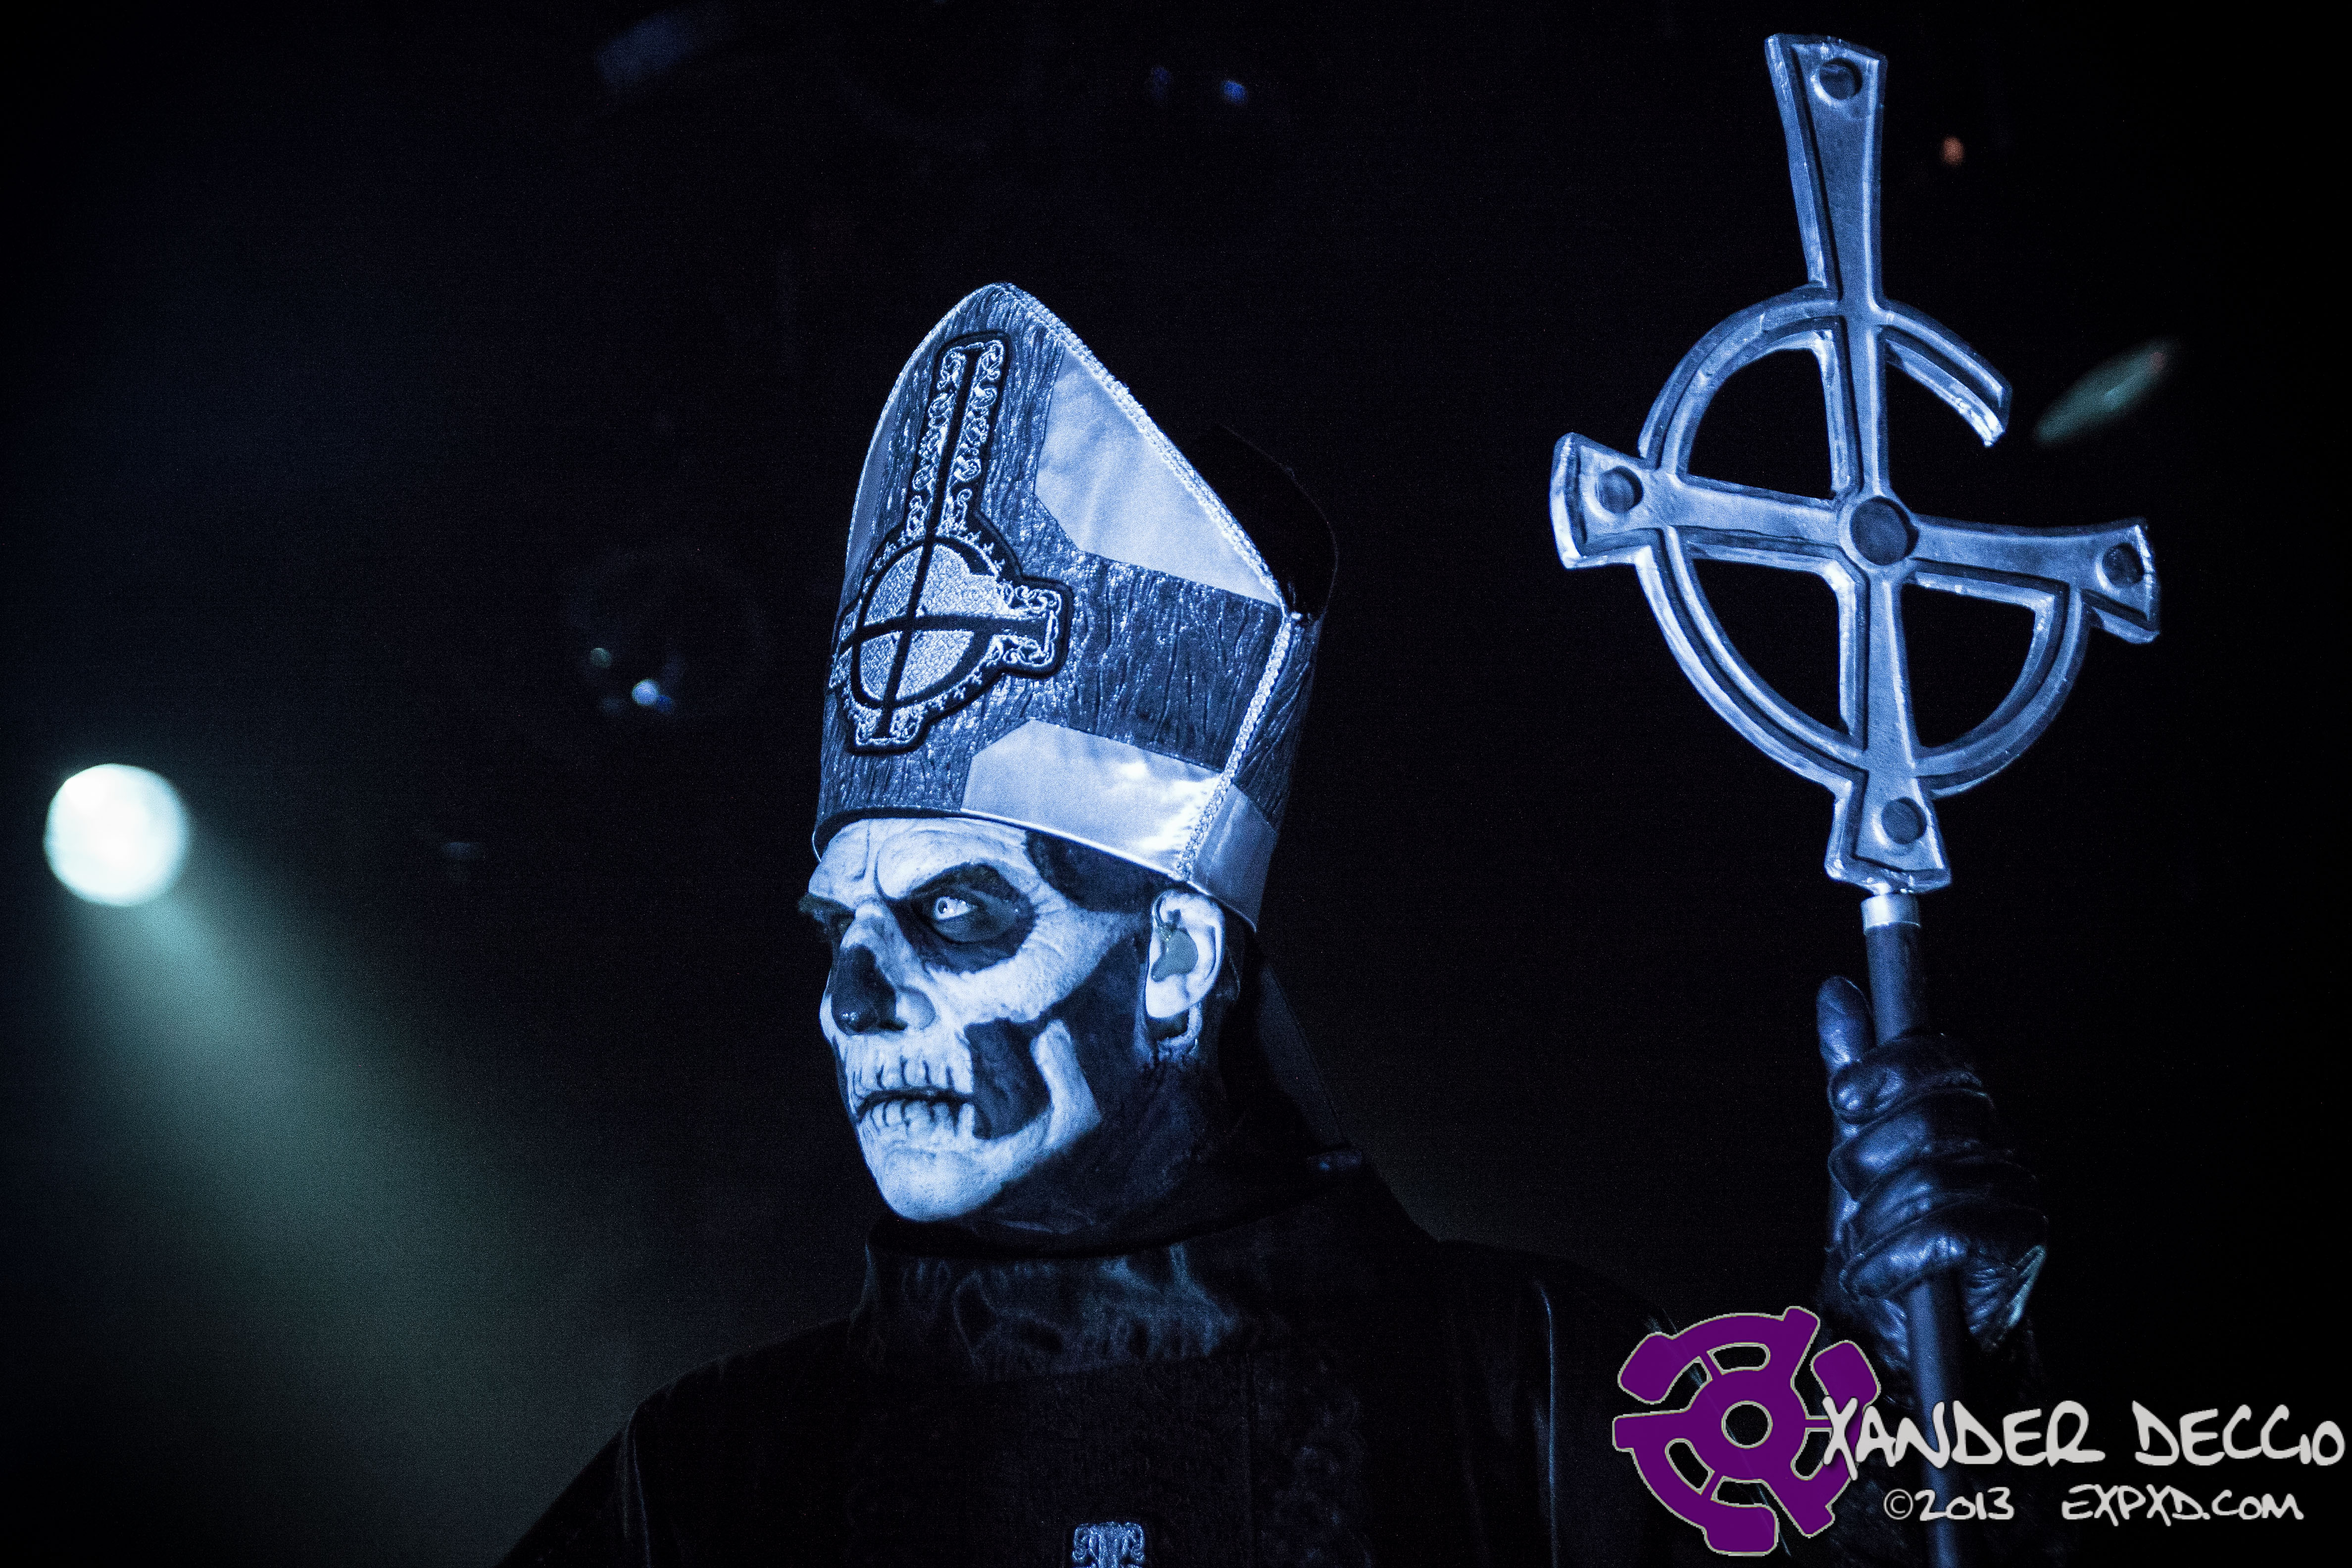 Ghost BC Live at Showbox @ The Market – 5/31 (Photo by Xander Deccio)